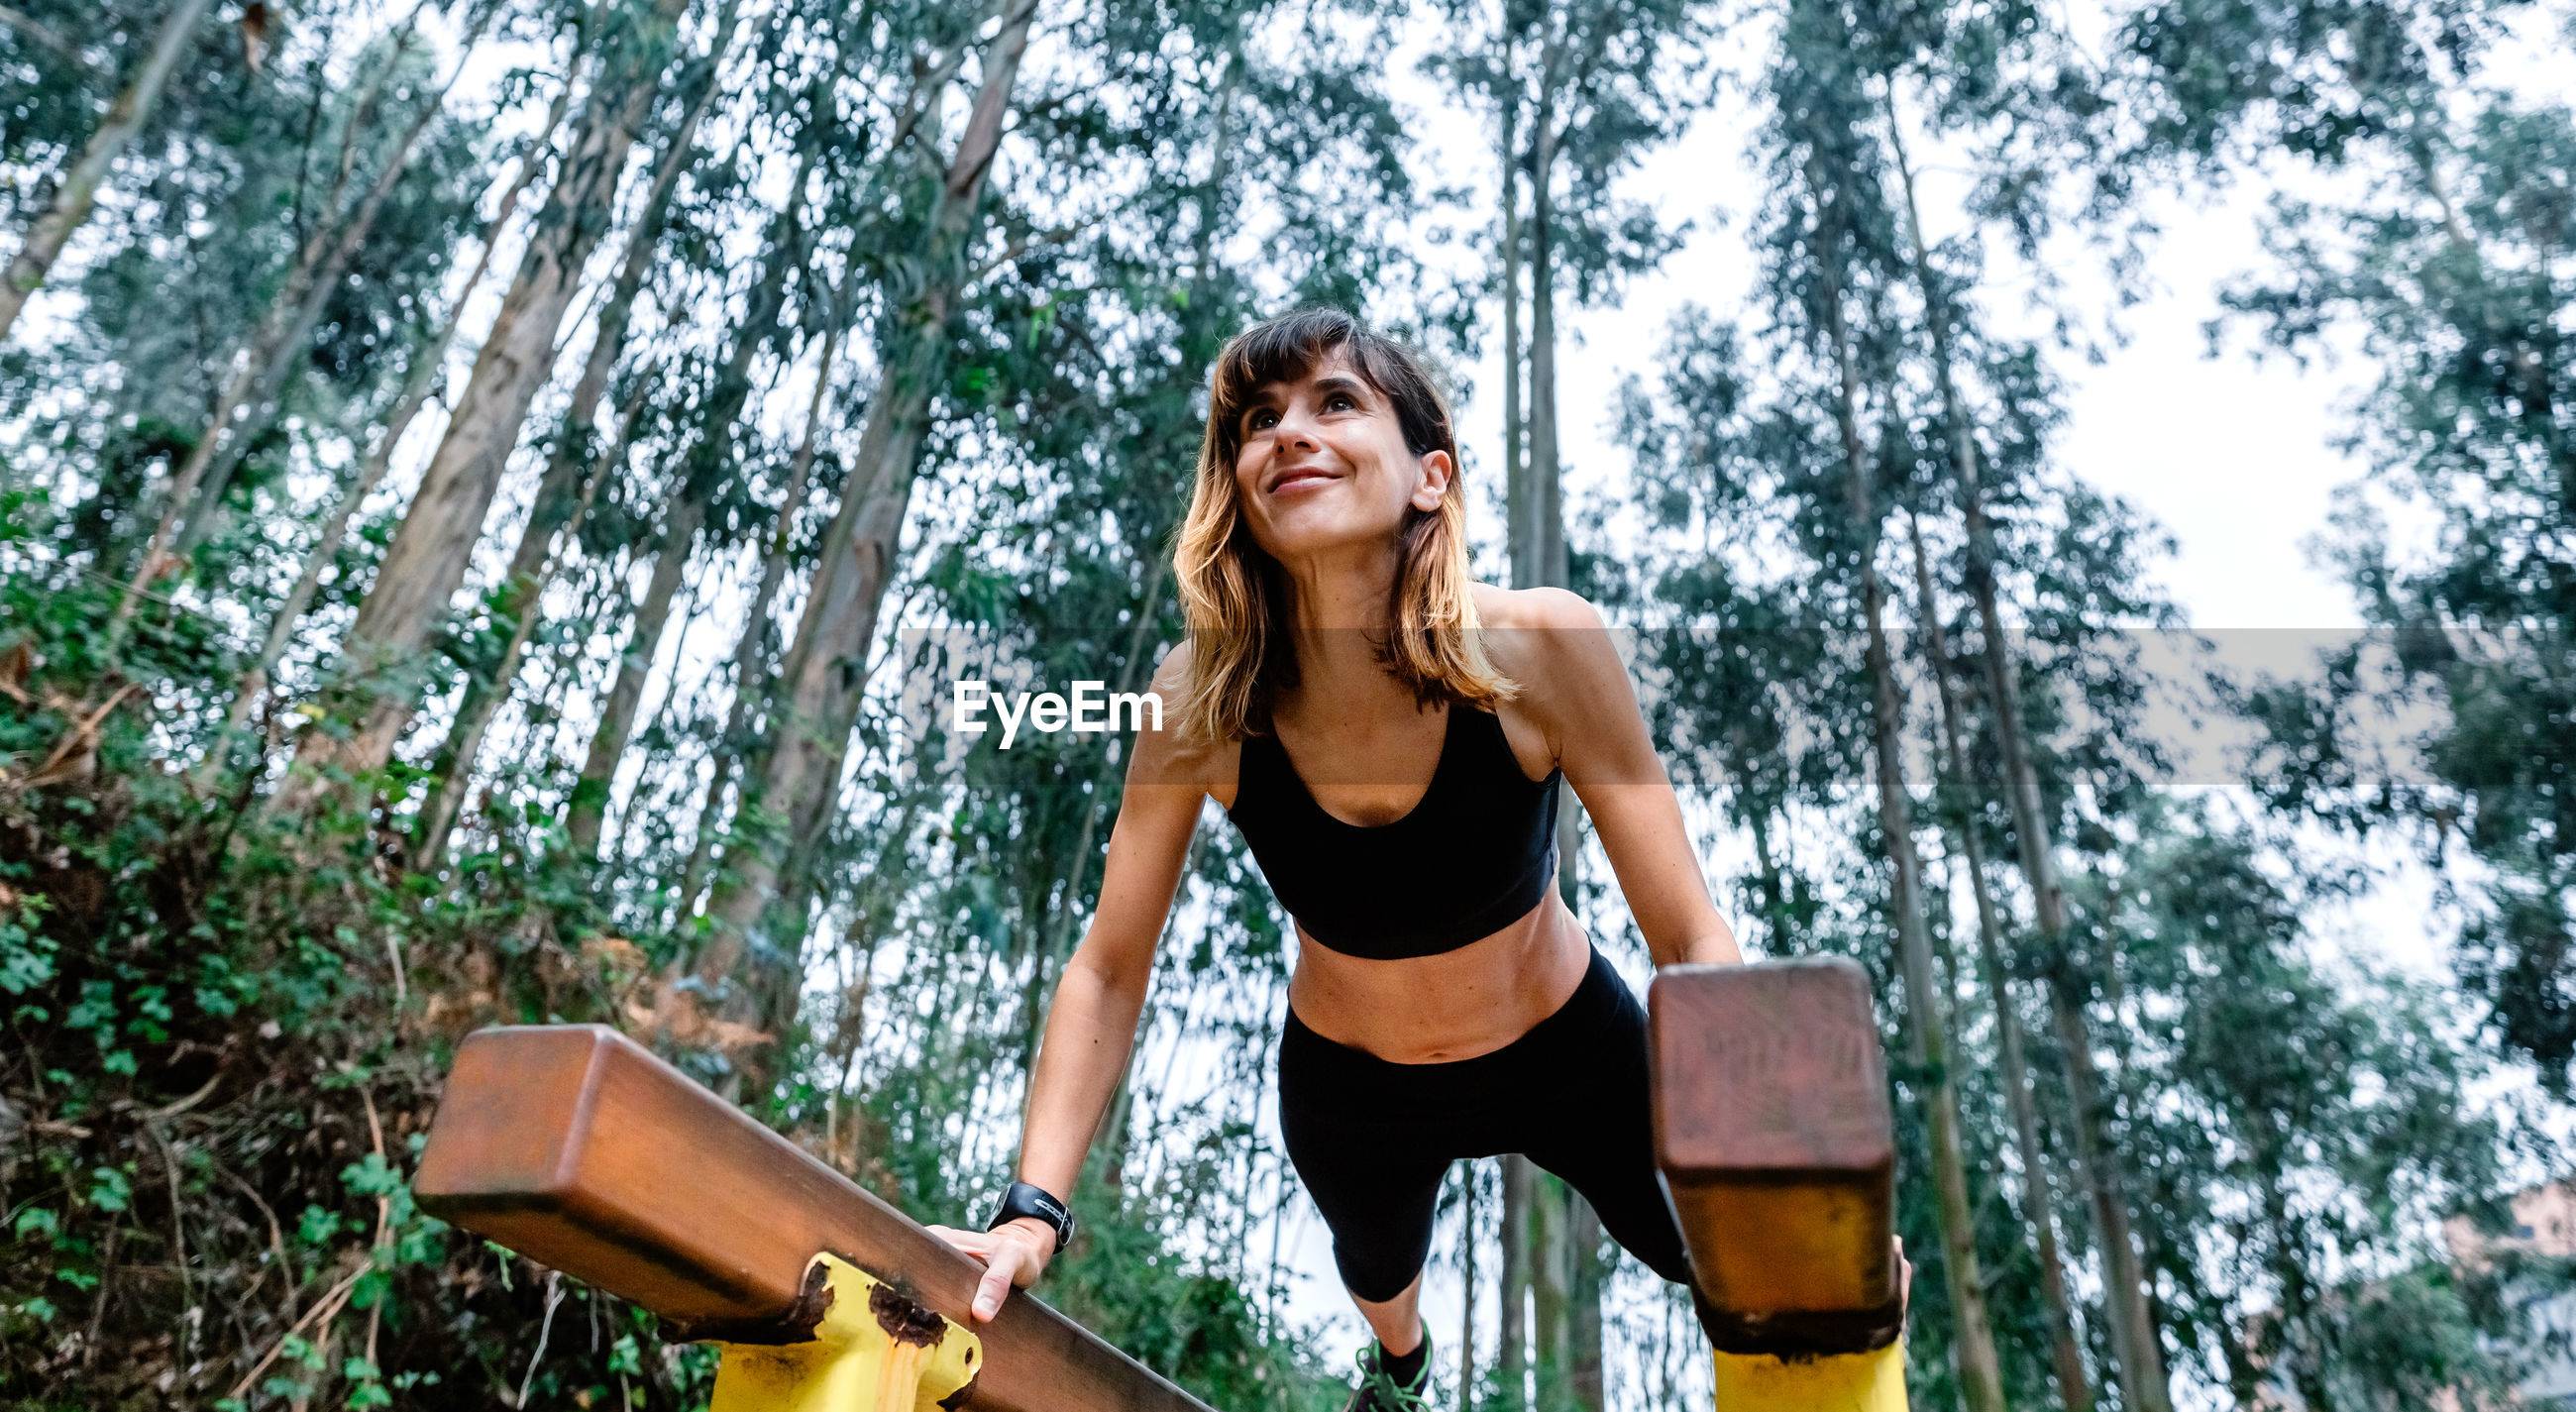 Low angle view of woman exercising against trees